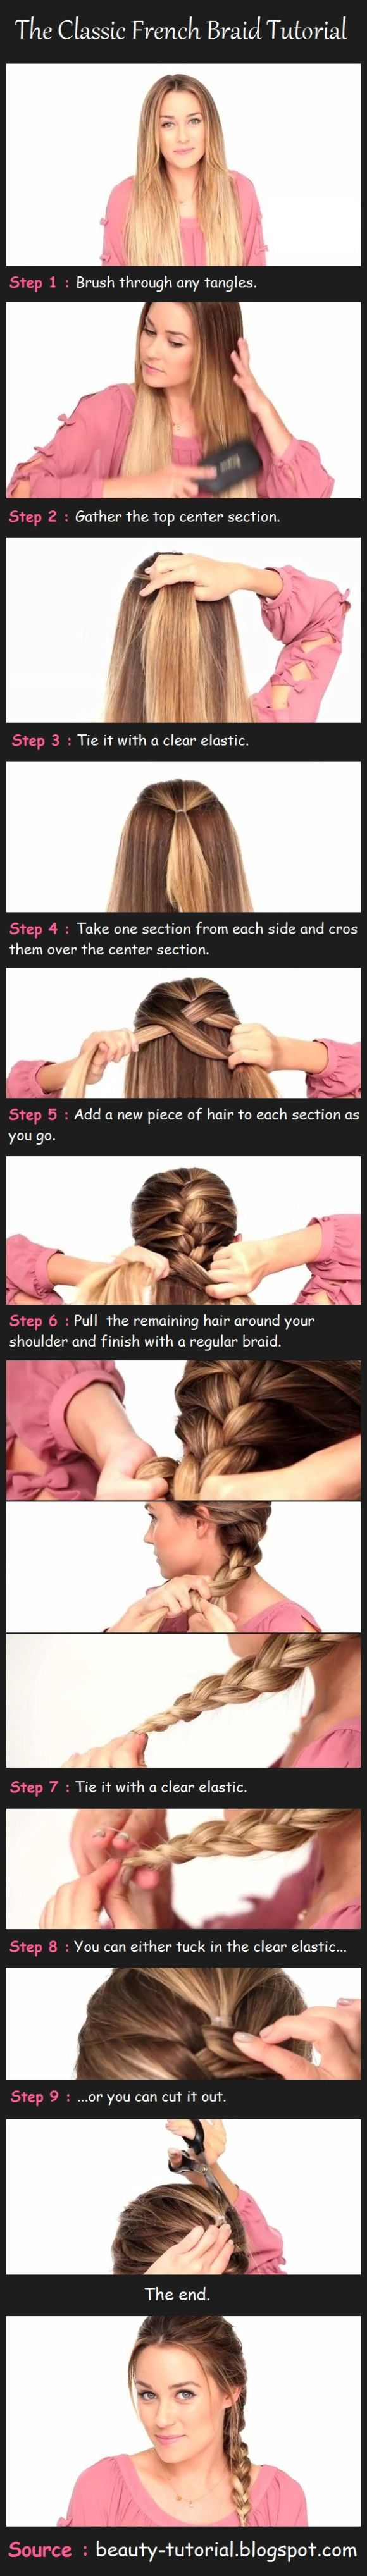 The Classic French Braid Tutorial...I've never thought of using a rubberband at the top!